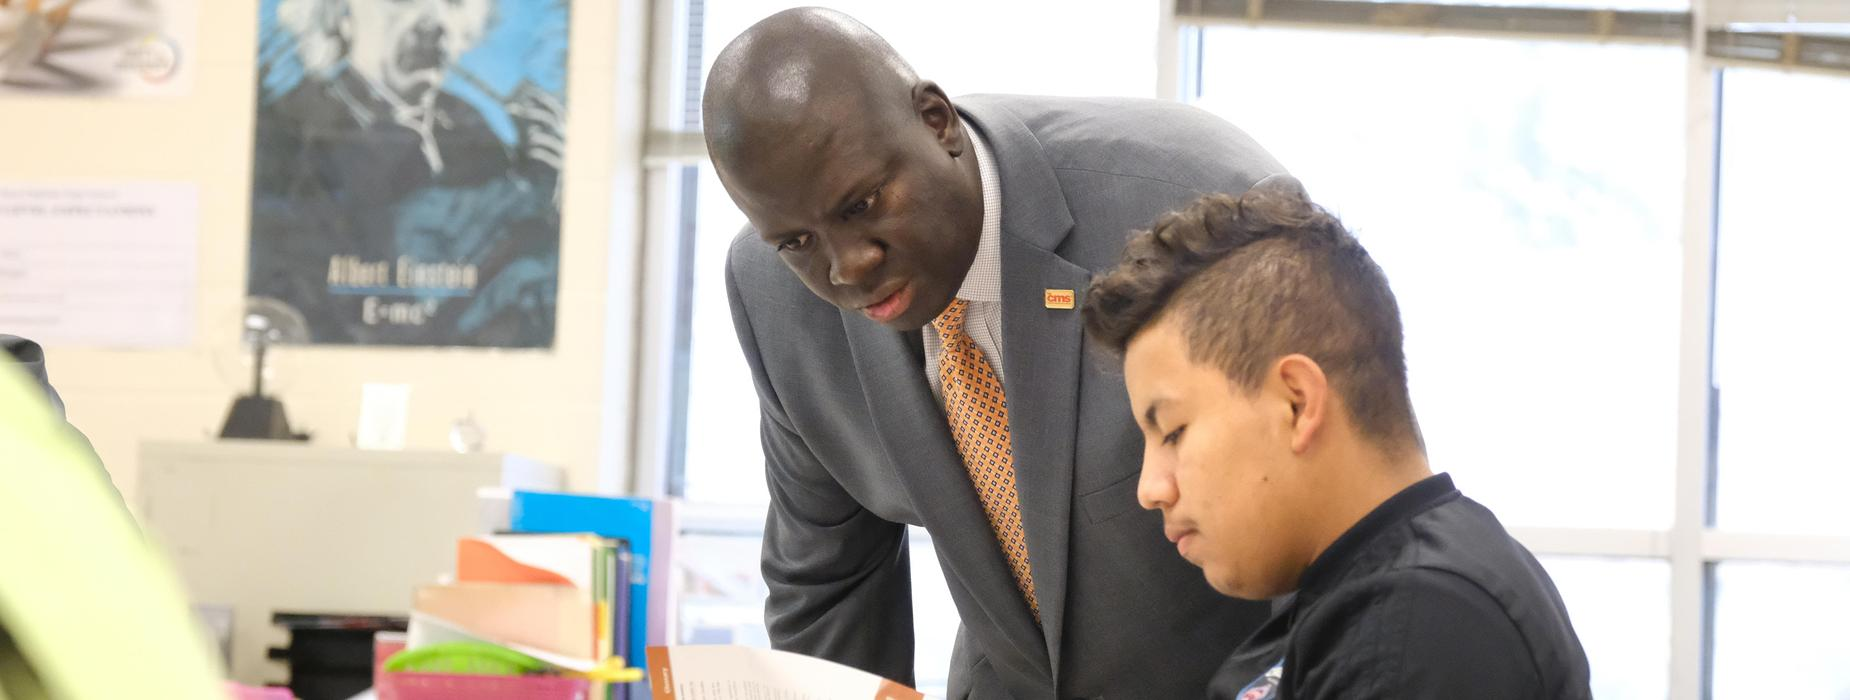 Superintendent Earnest Winston assists a student.